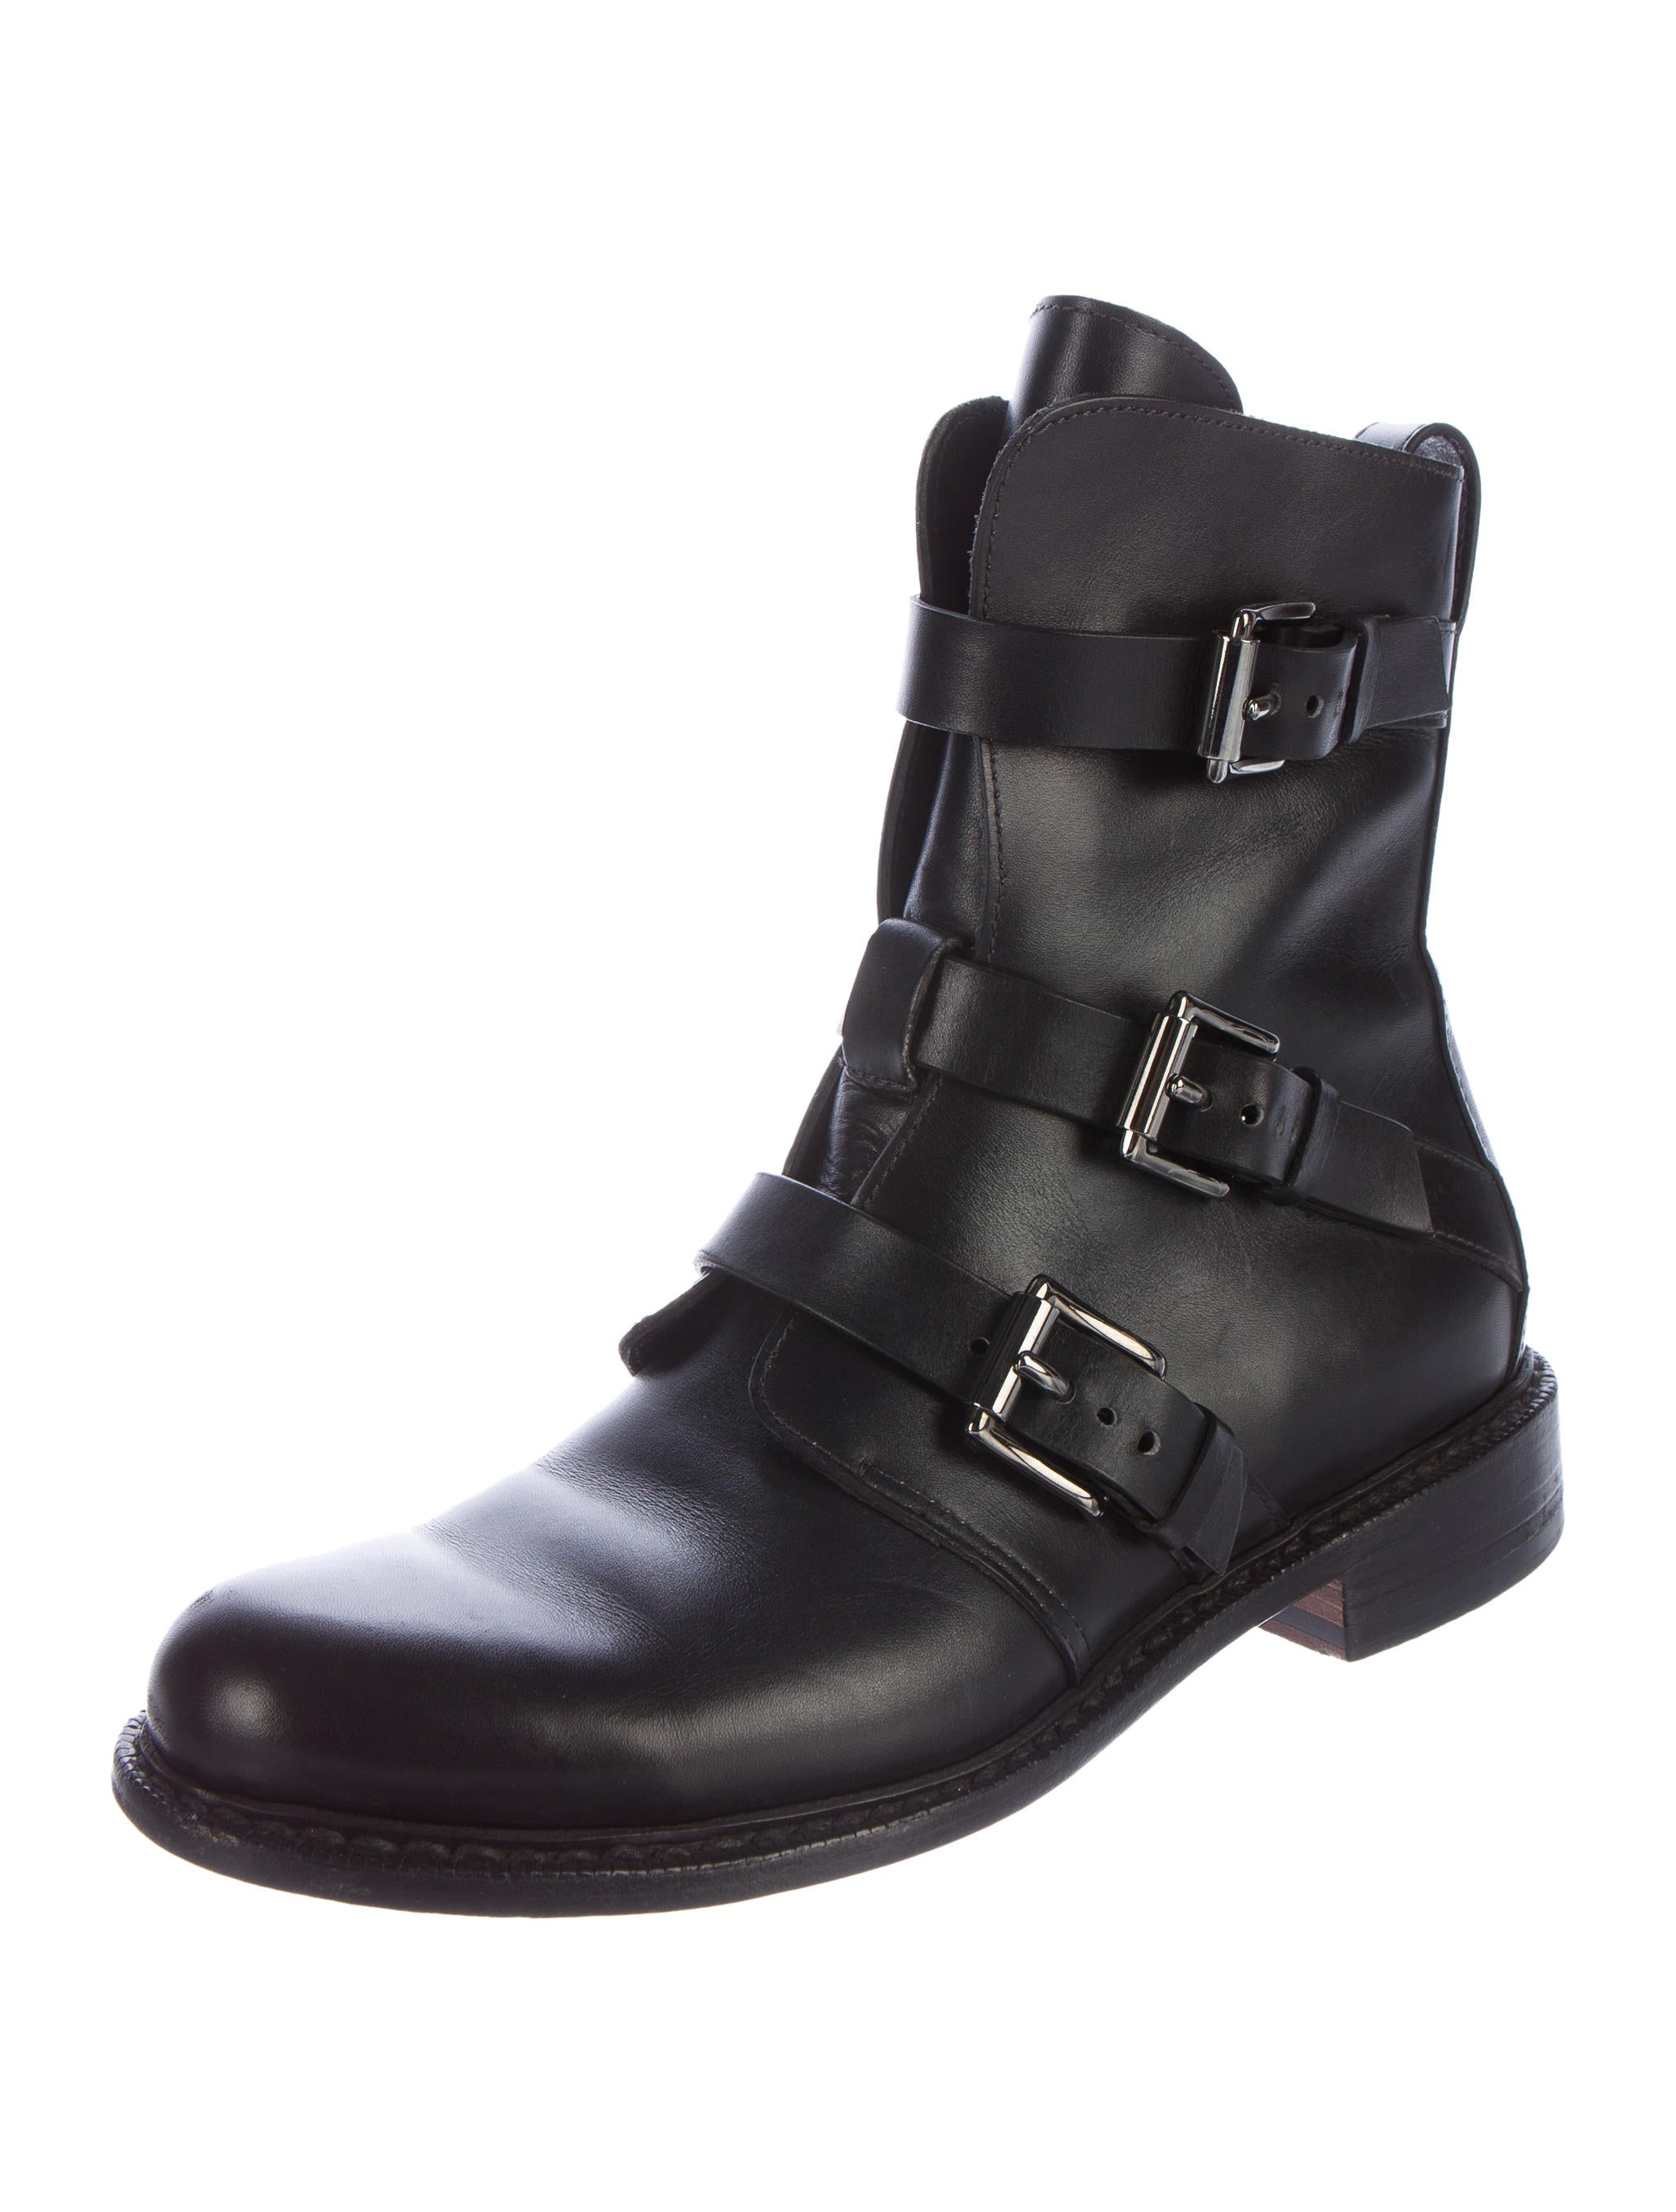 Perfect Womens Knee High Boots Combat Lace Up Patent Leather Casual Comfort Shoes Black   EBay